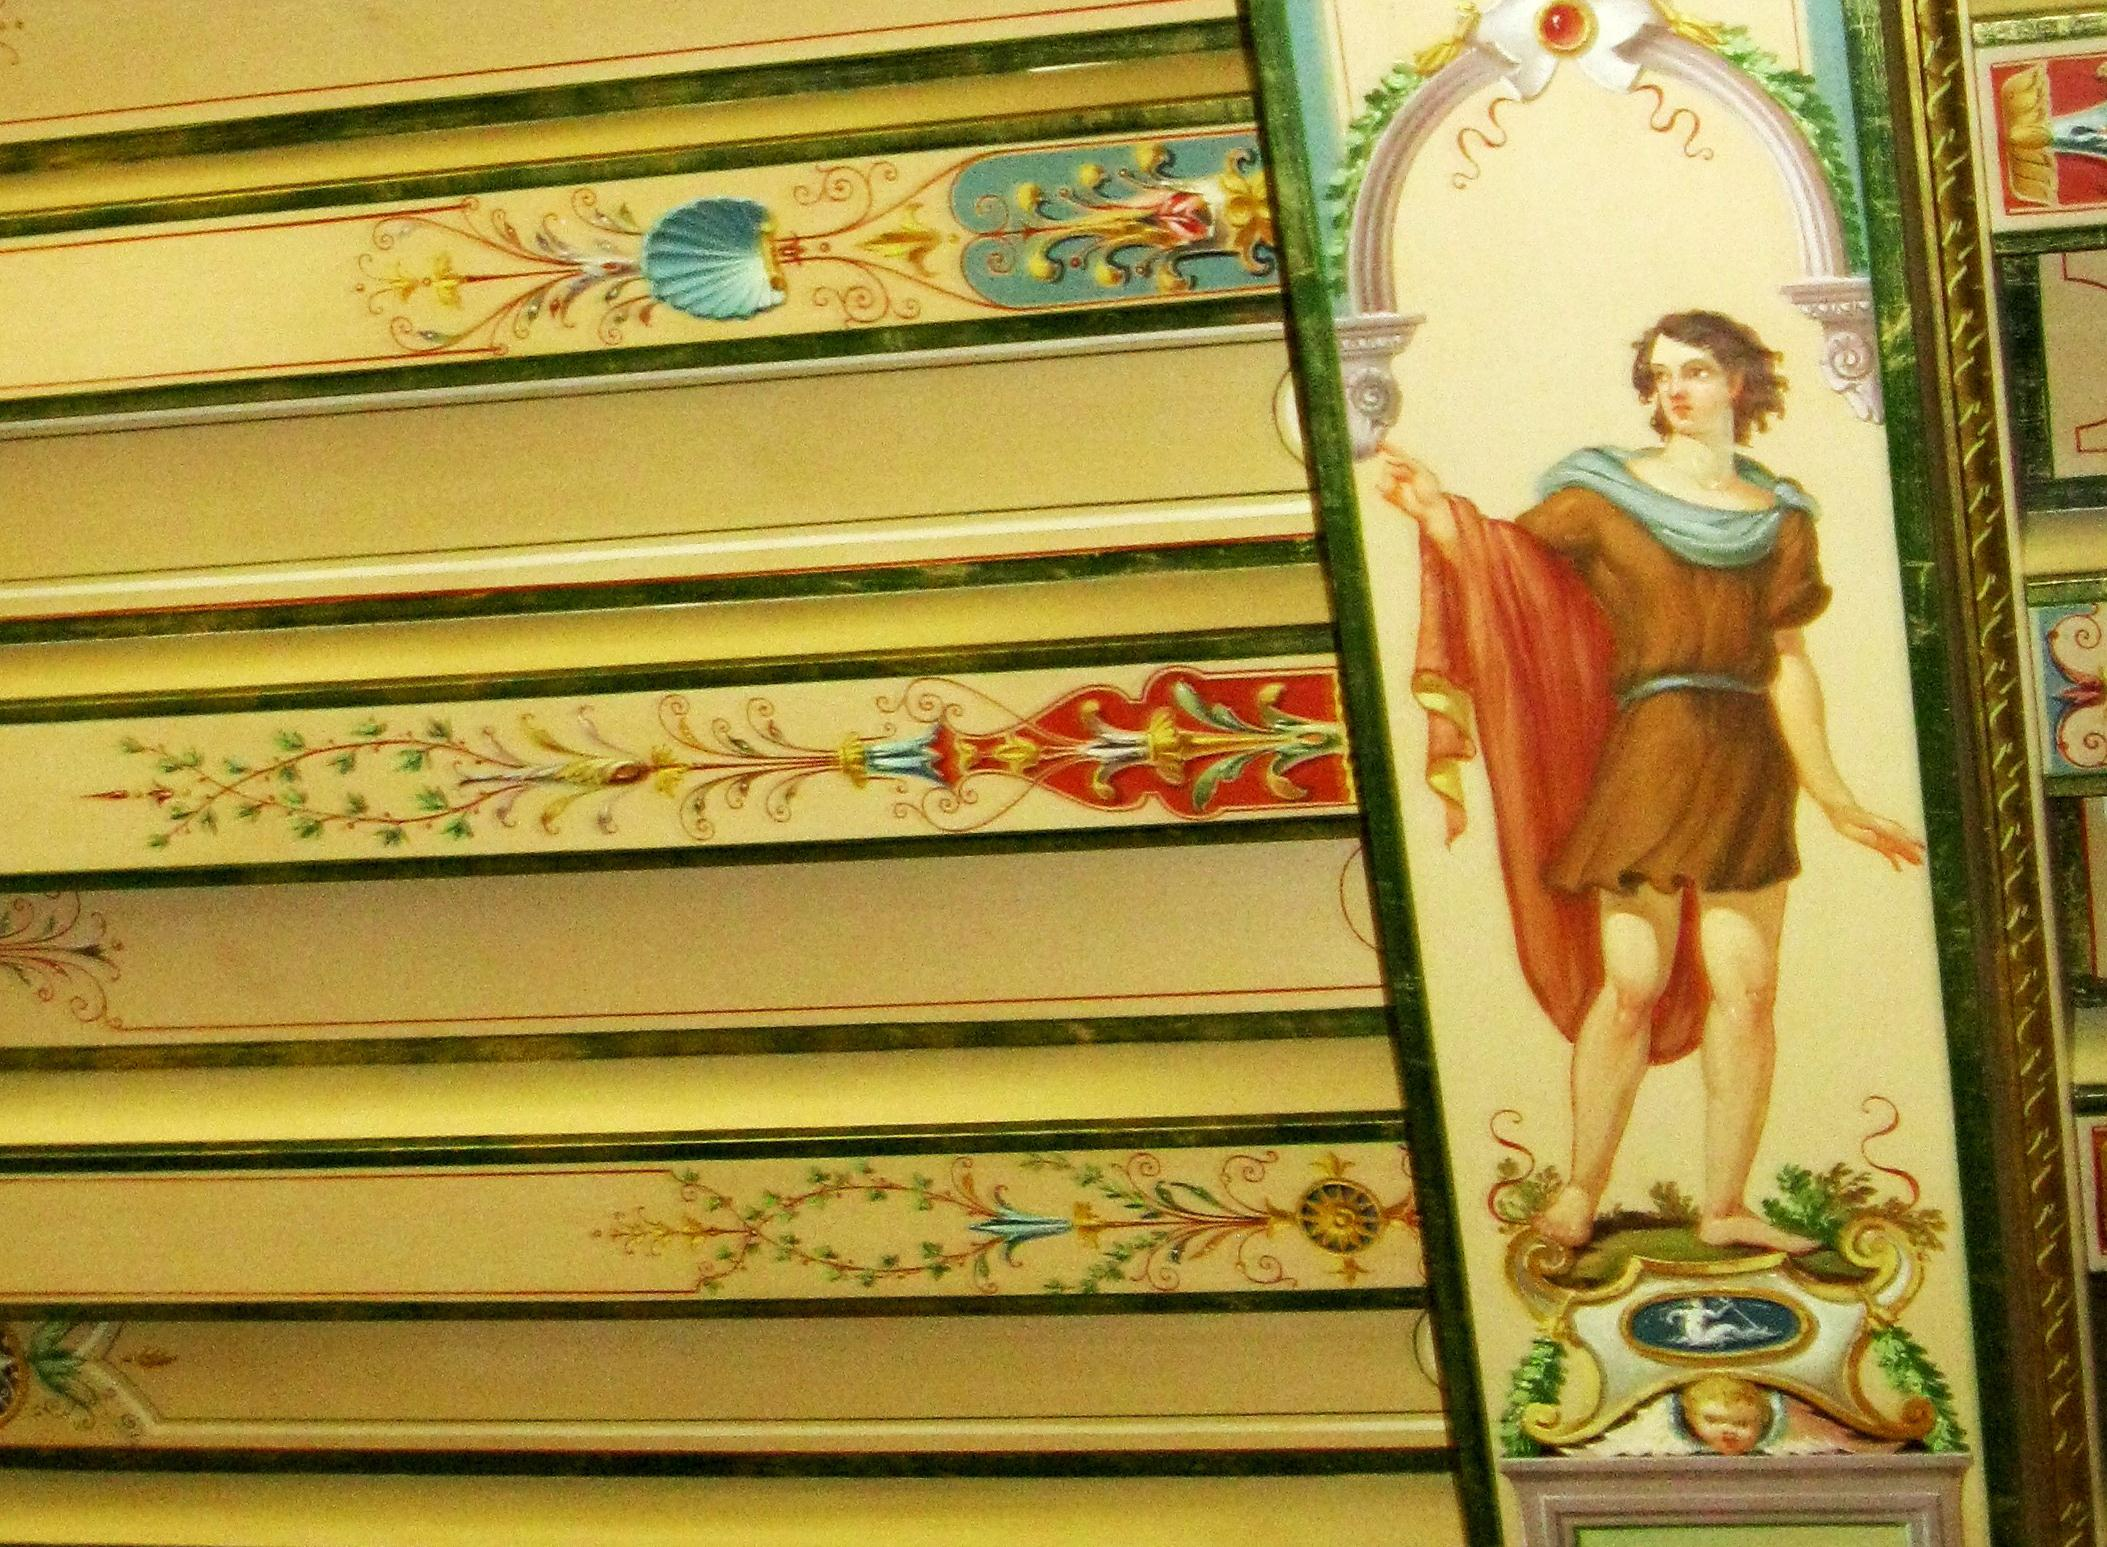 Image: Detail of a painted canvas ceiling in Bellosguardo